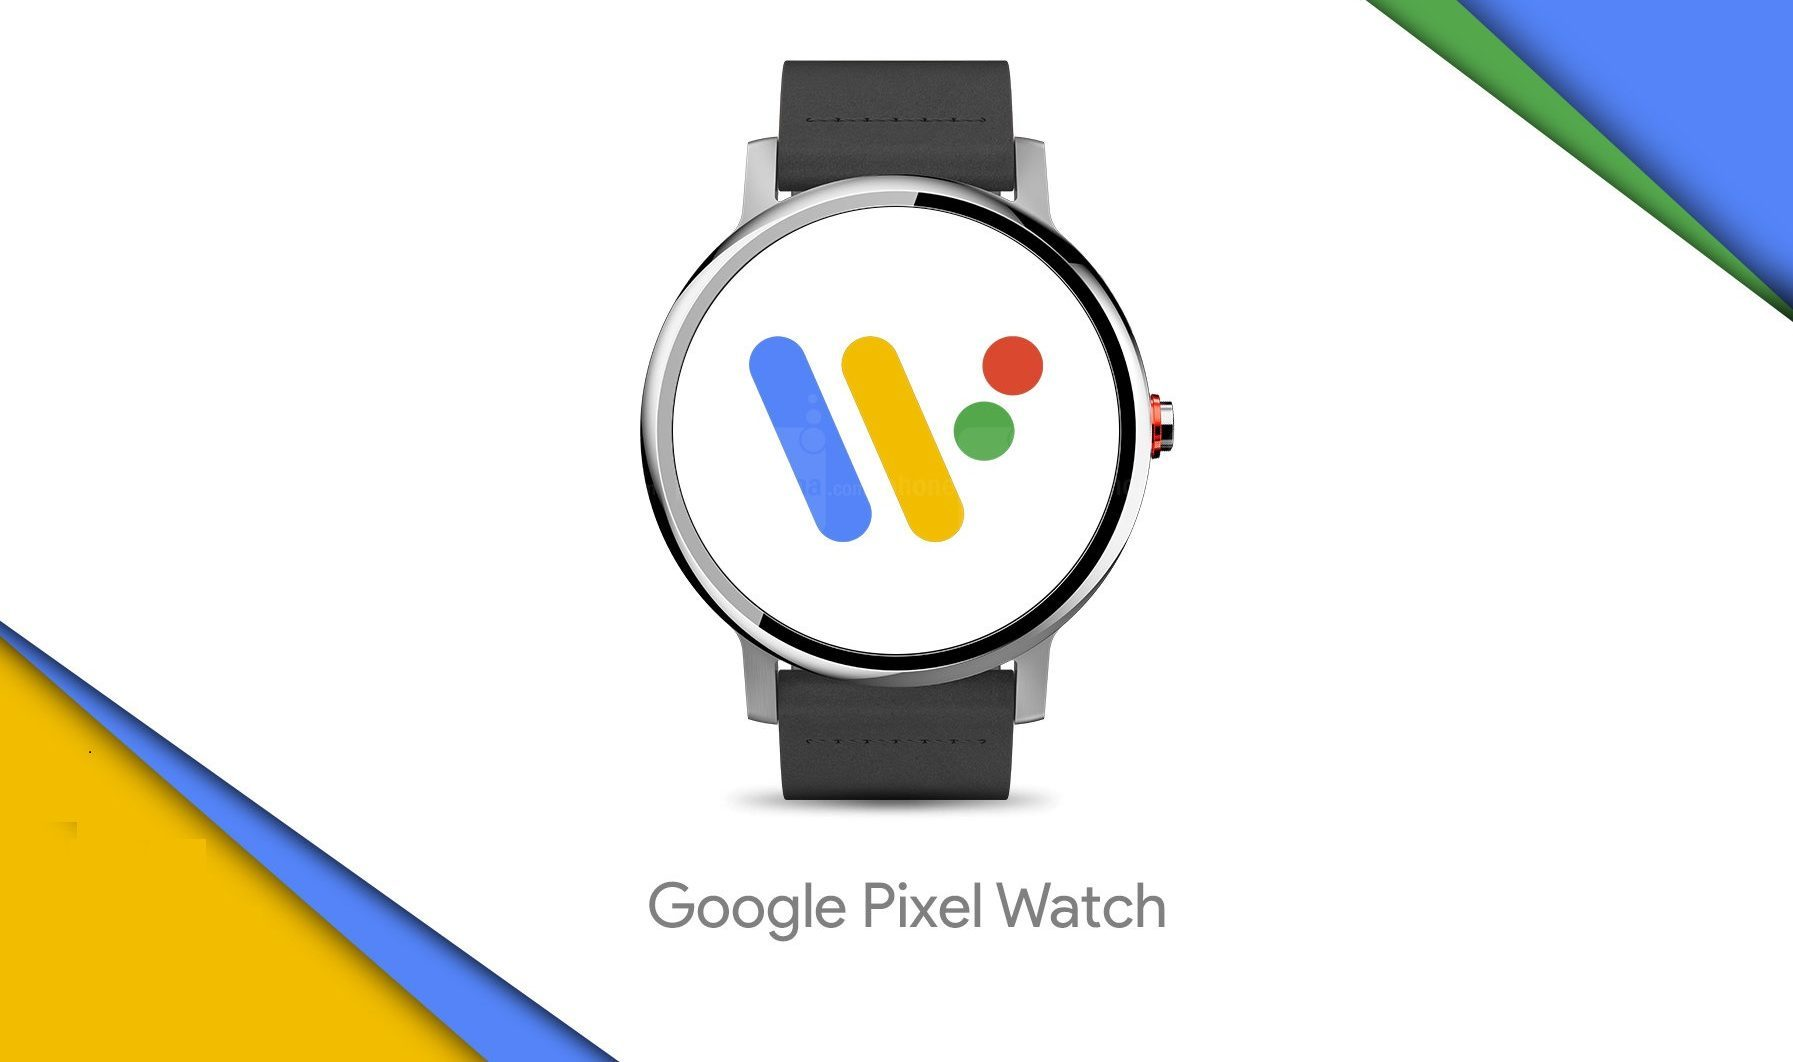 Google Pixel Watch Specs, Features, OS, Release Date, Price and Details for Google Smartwatches